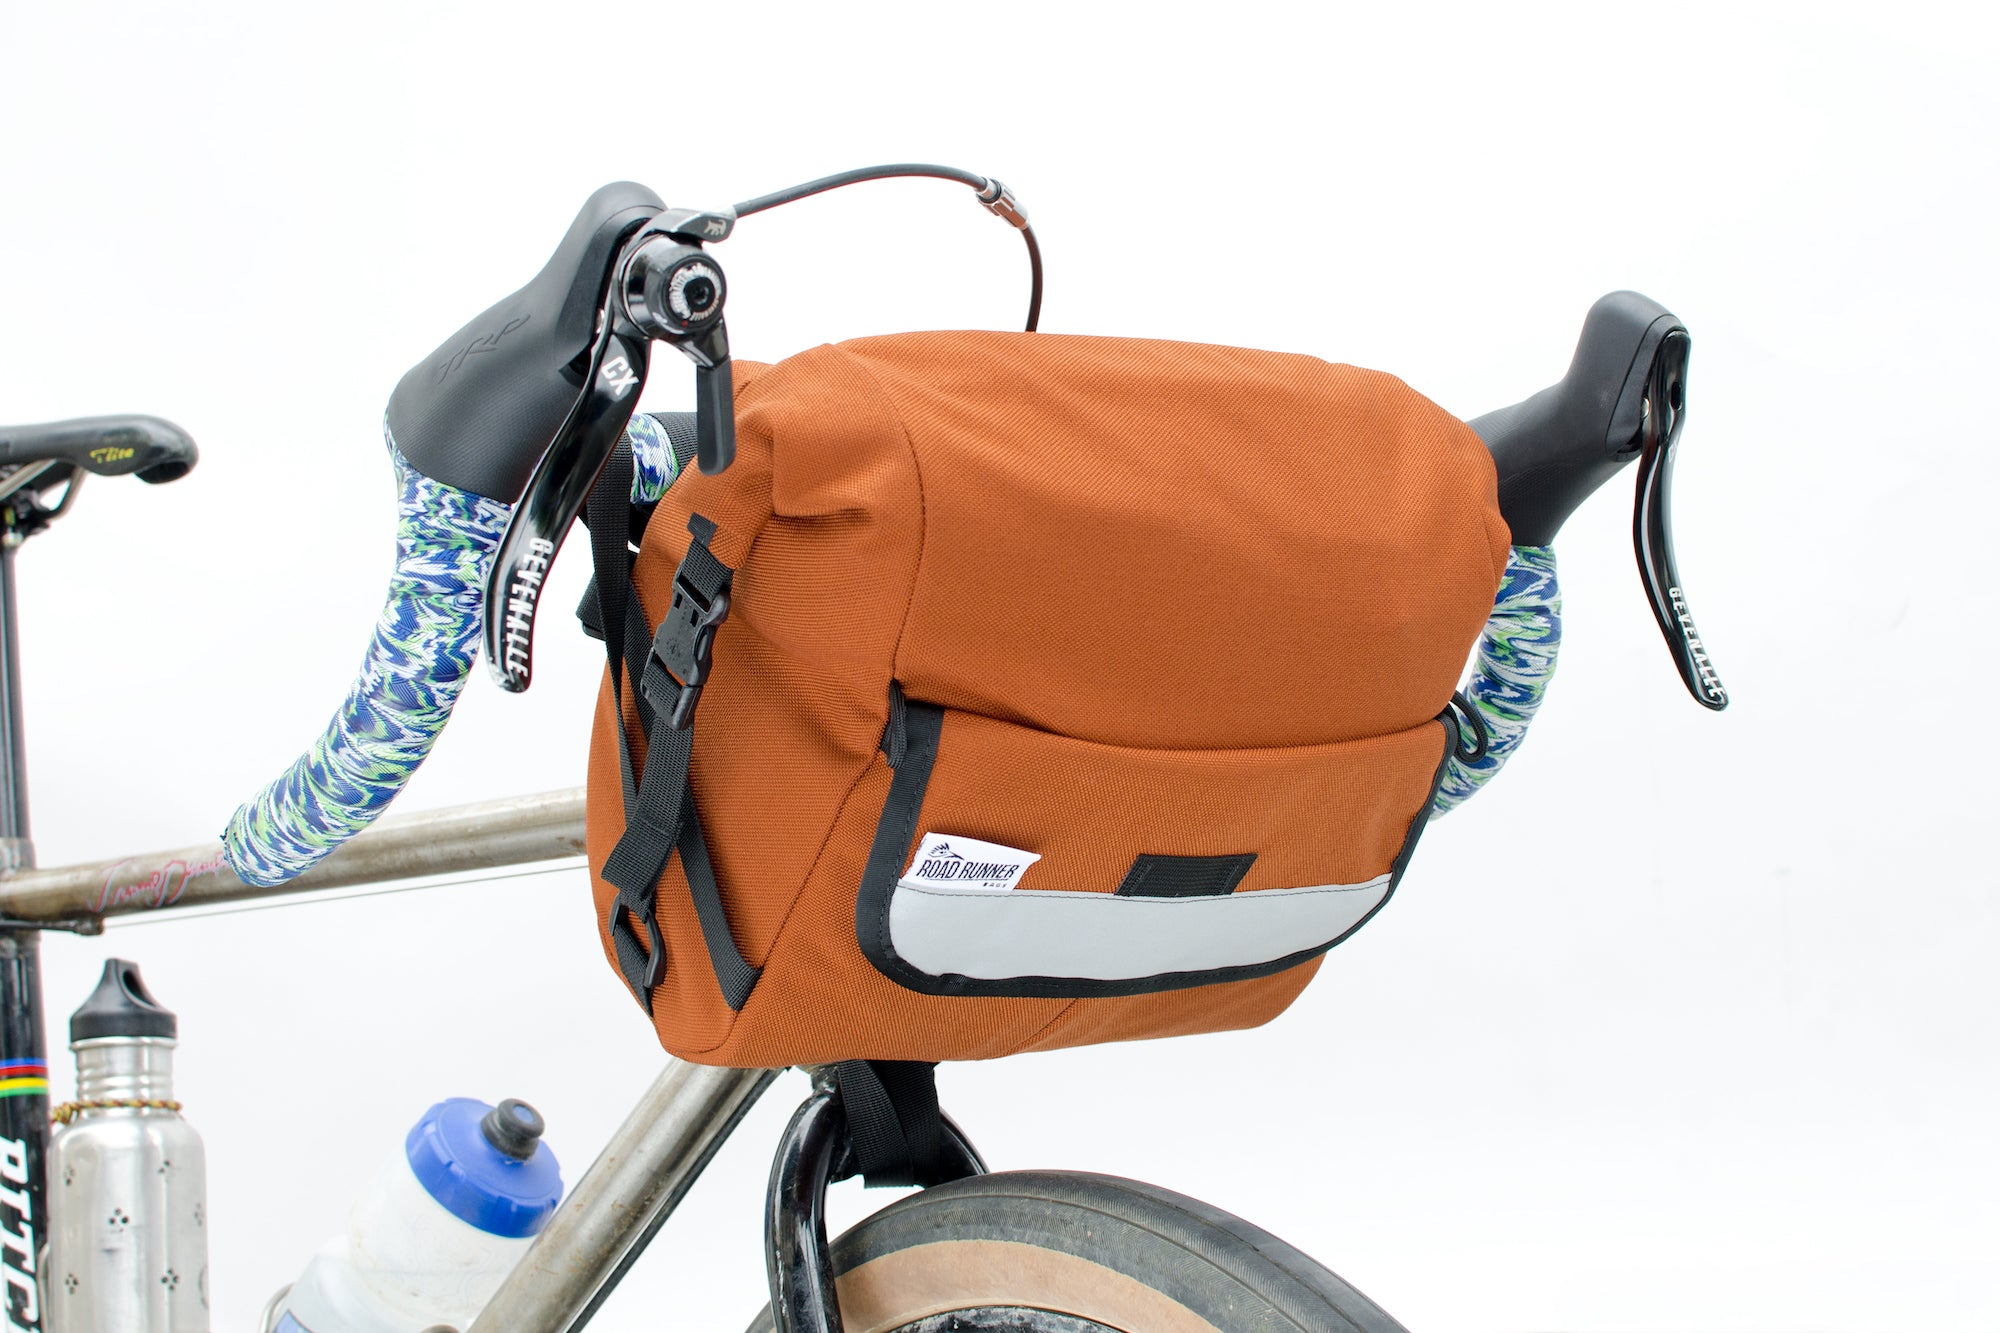 Jammer Bike Bag for Commuting, Bikepacking, Bike Camping and Adventuring by Bicycle